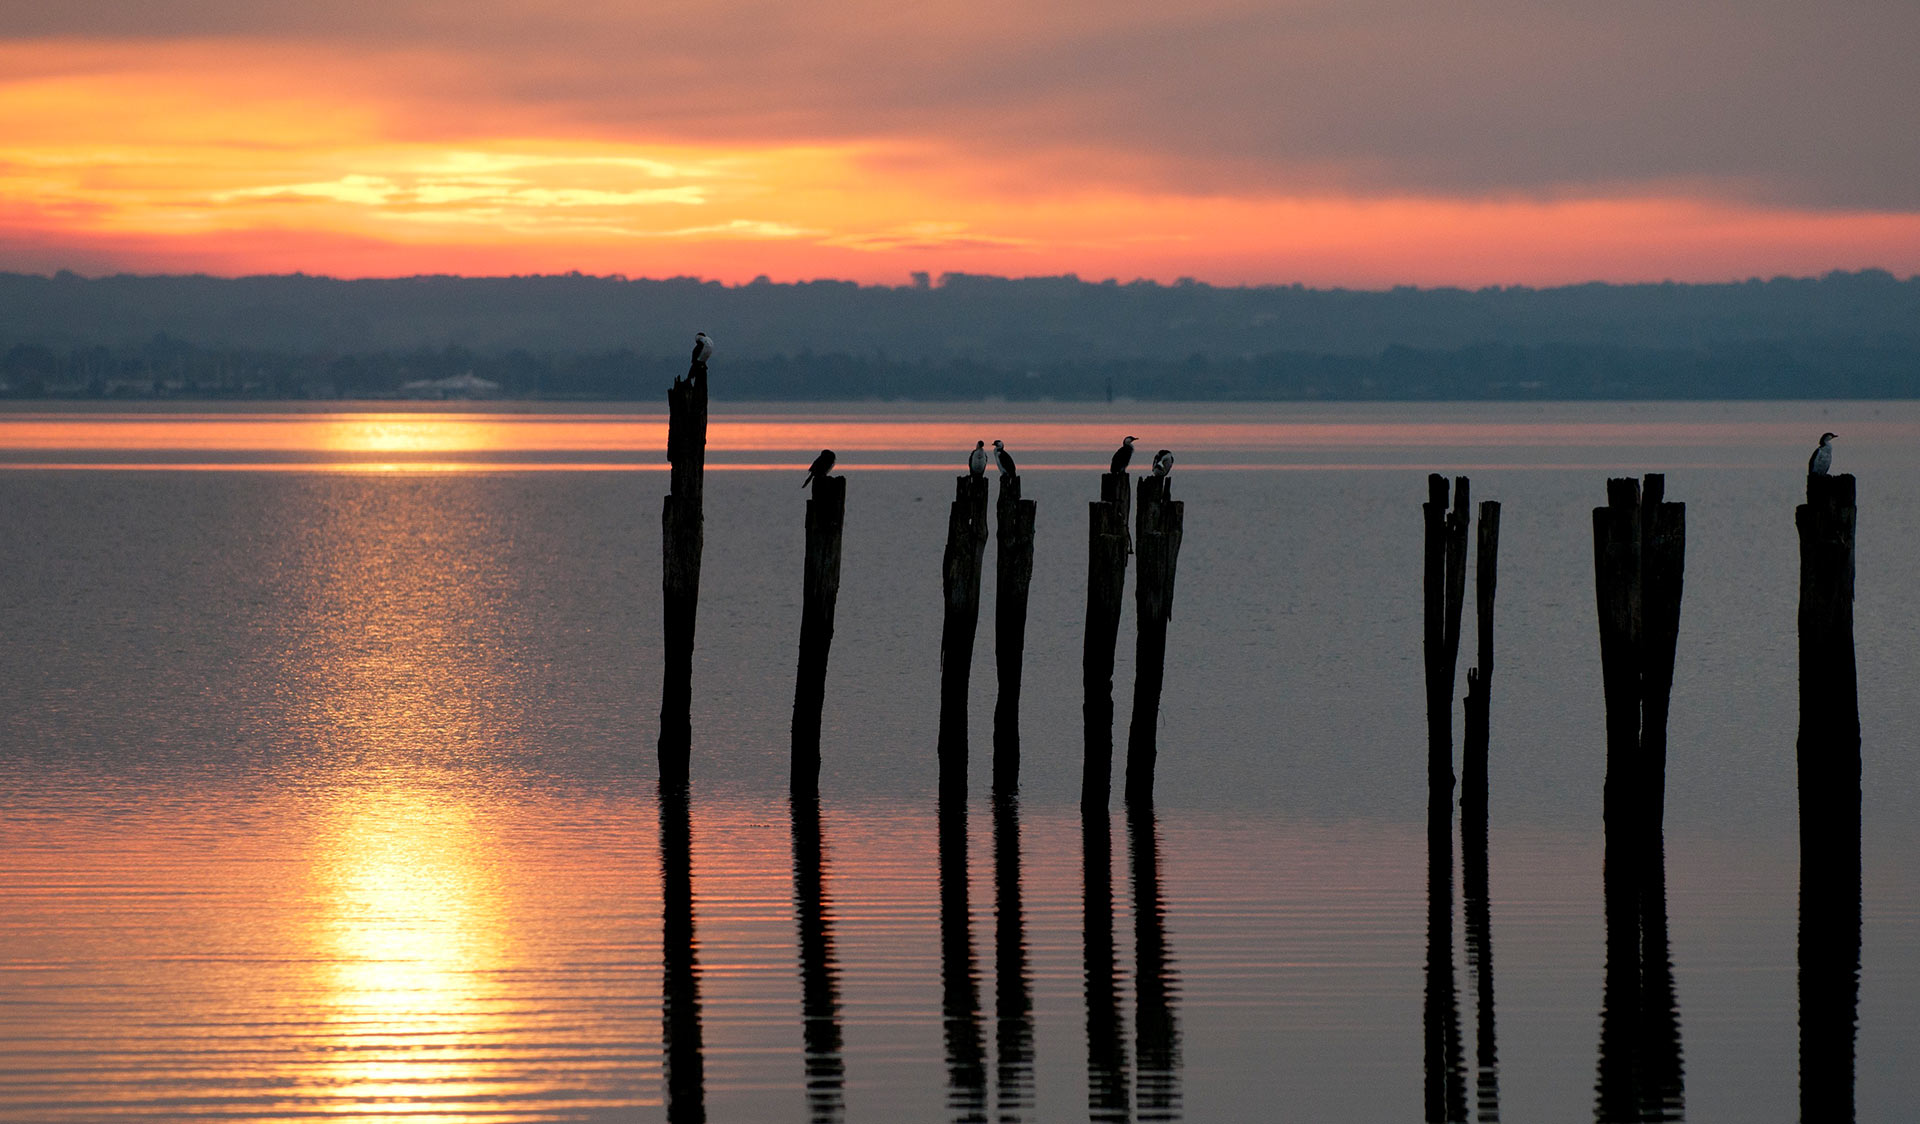 Sea birds sit upon the remnants of the old jetty at French Island while the sun sets below the horizon.